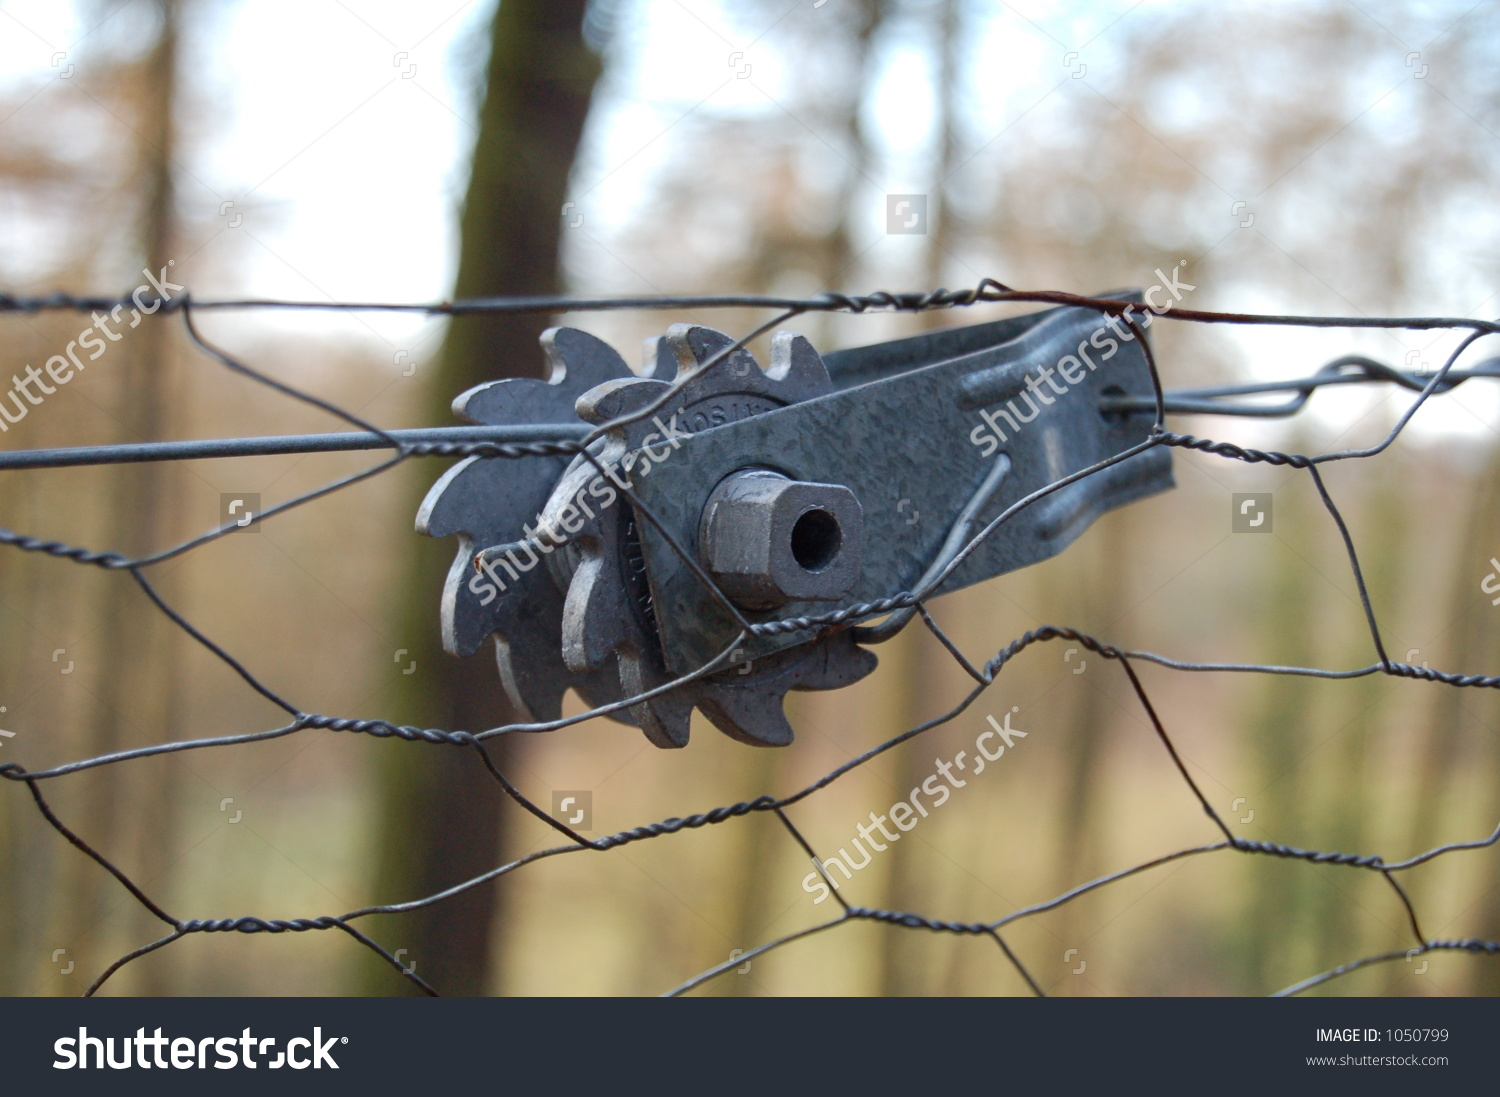 Ratchet Used To Tighten Wire Fences To The Correct Tension In The.